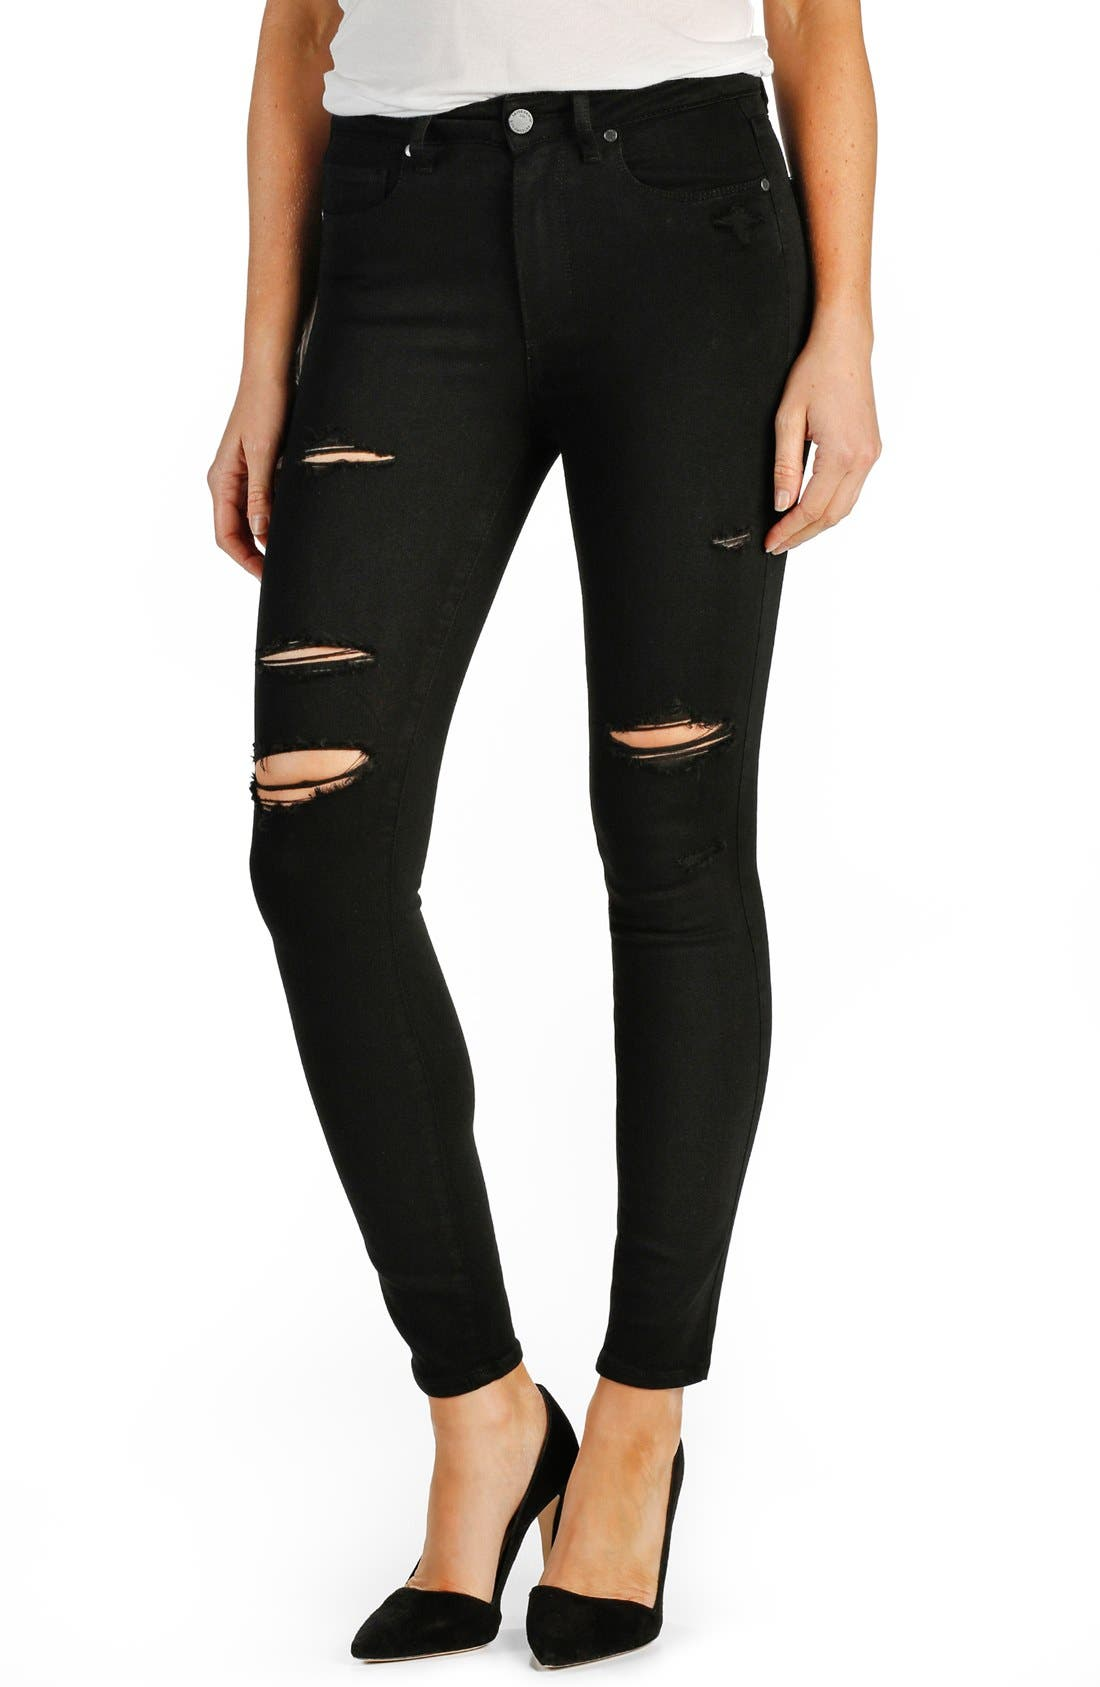 'Transcend - Hoxton' High Rise Destroyed Ankle Ultra Skinny Jeans,                             Main thumbnail 1, color,                             001